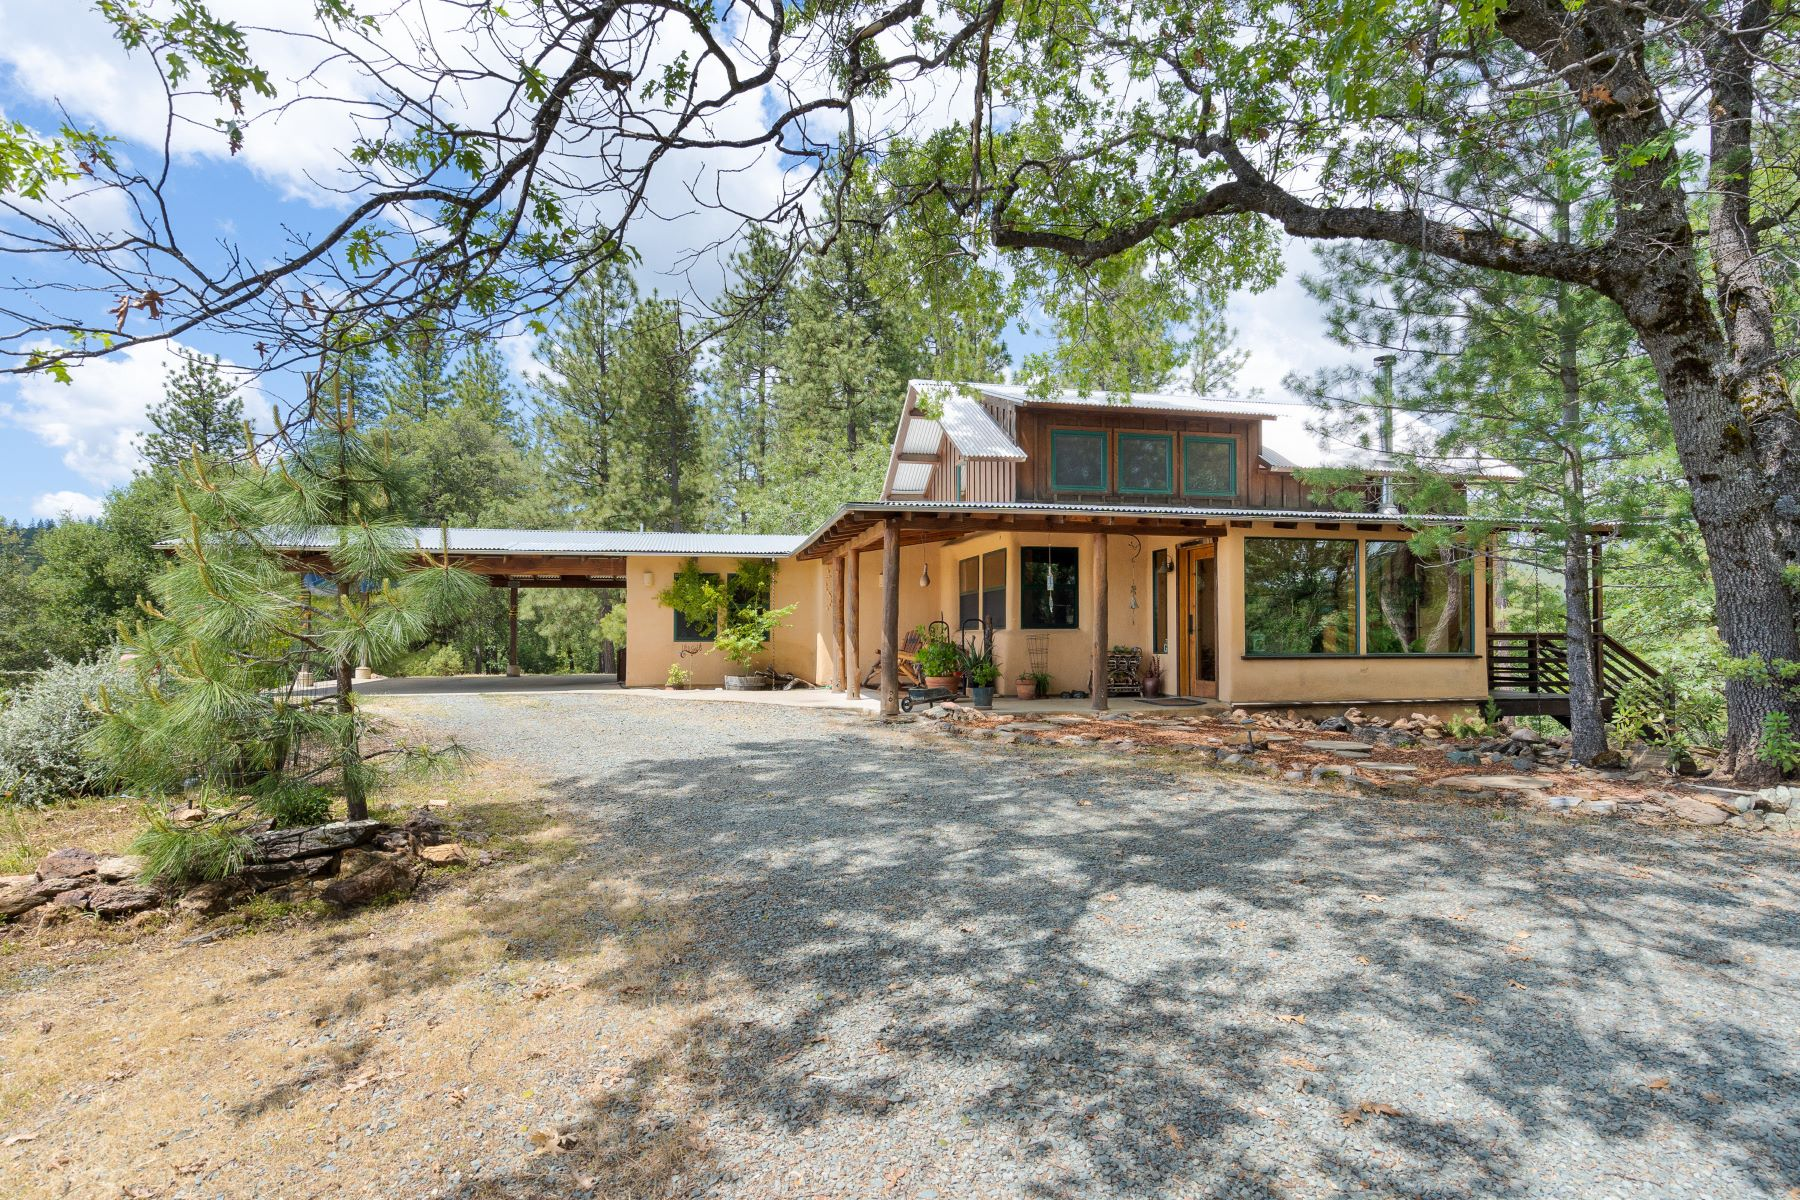 Single Family Homes for Sale at 17081 Rams Horn Grade, Volcano, CA, 95689 17081 Rams Horn Grade Volcano, California 95689 United States